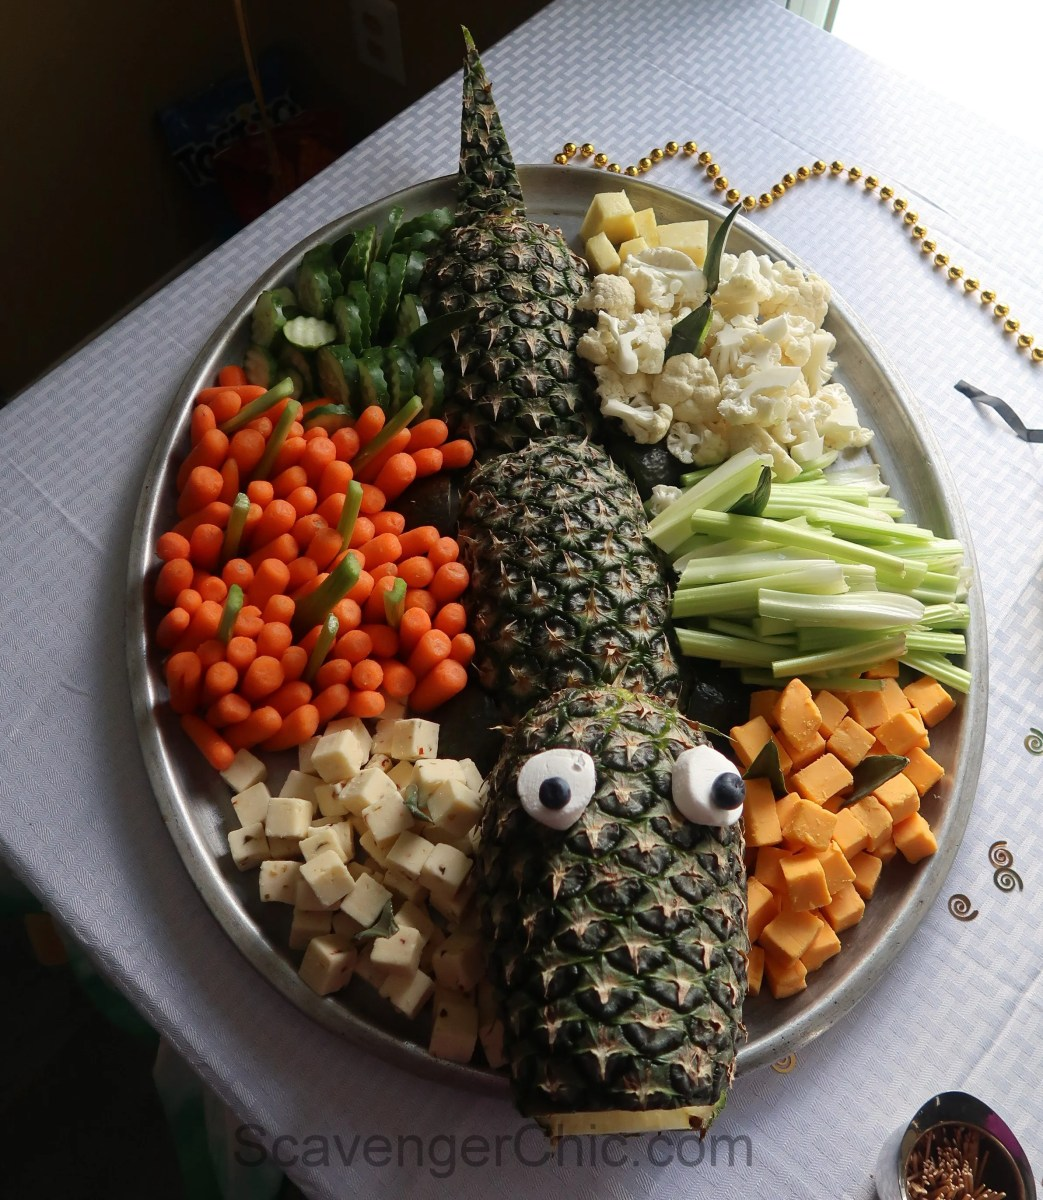 Alligator Cheese And Veggie Platter Scavenger Chic